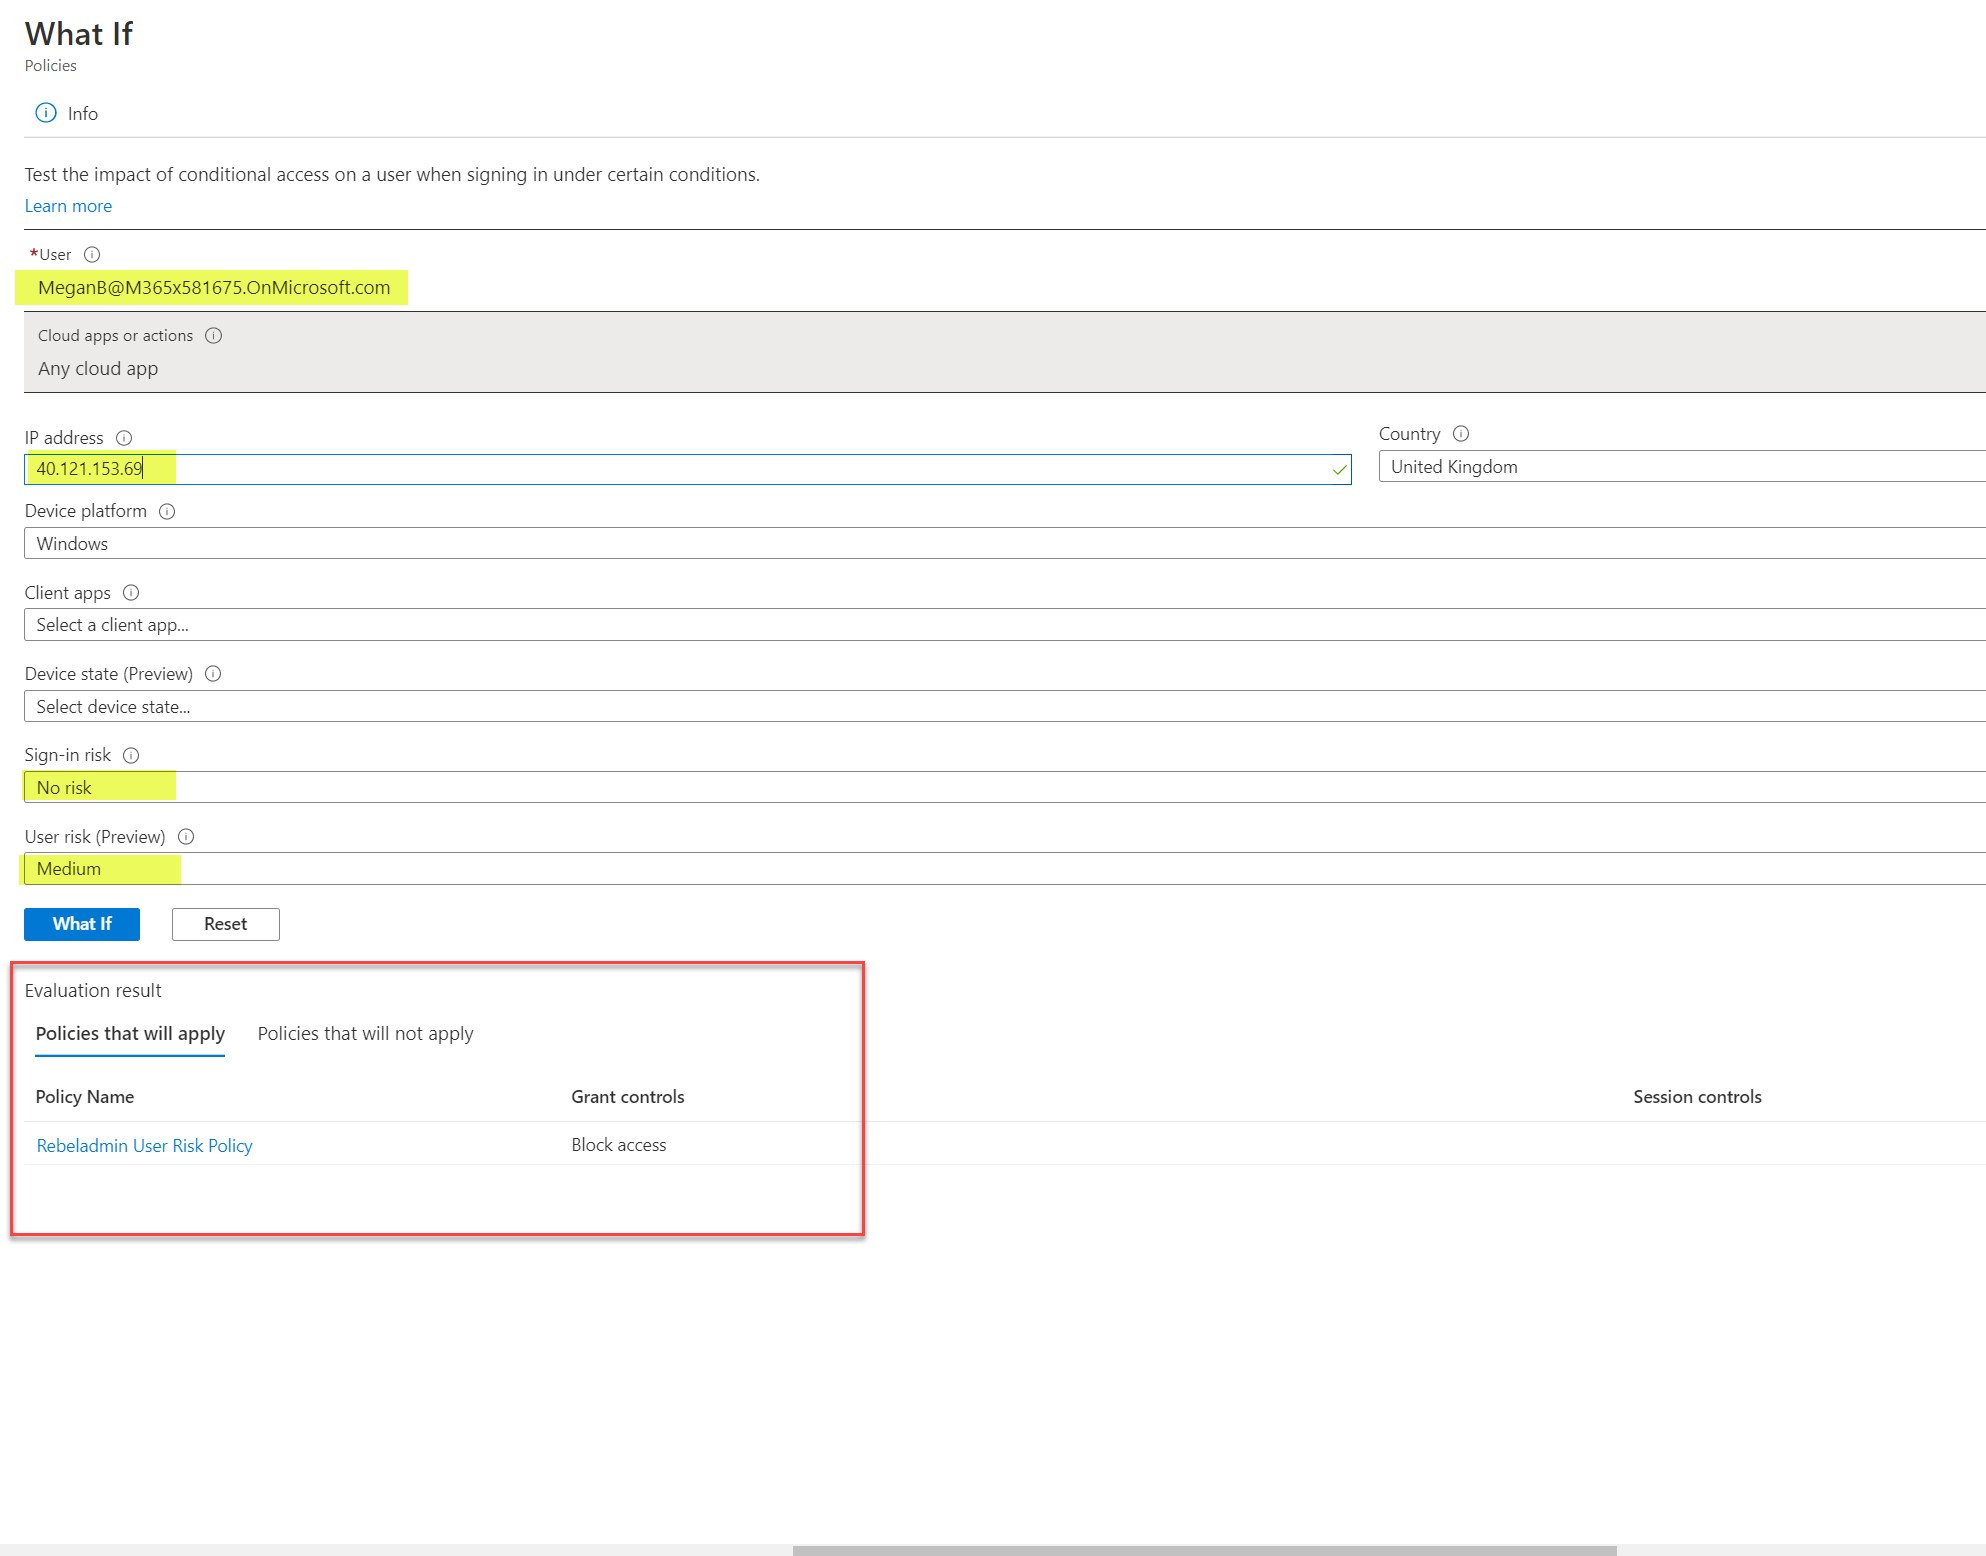 conditional access what if tool results